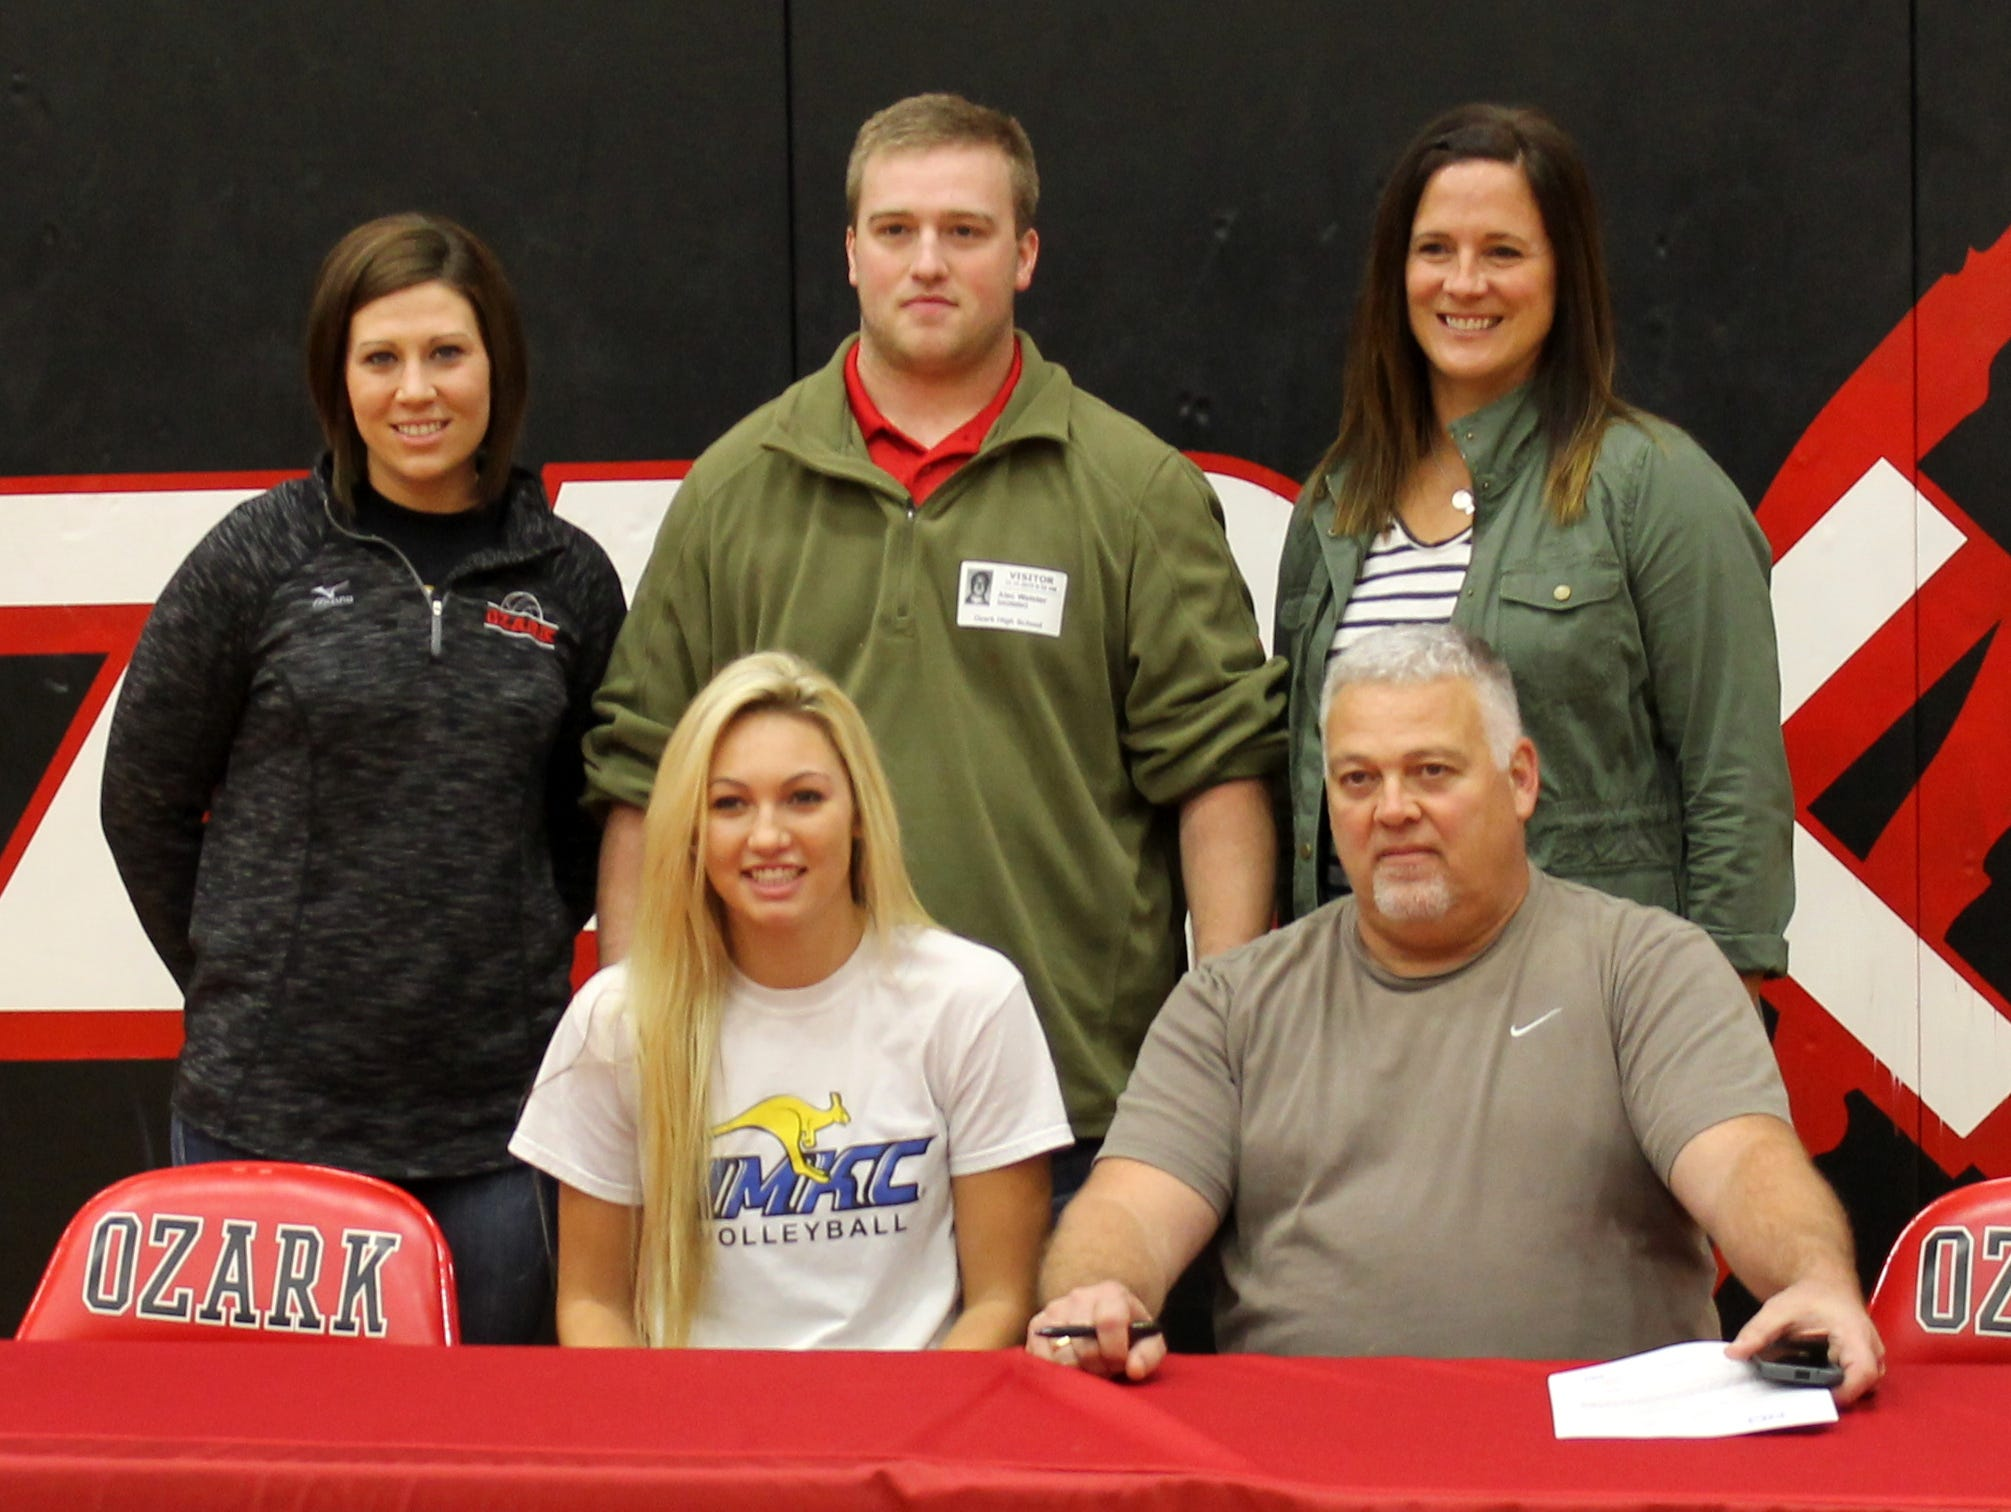 Ozark senior setter Kendra Sater (seated, center) signed to play volleyball at the University of Missouri-Kansas City.